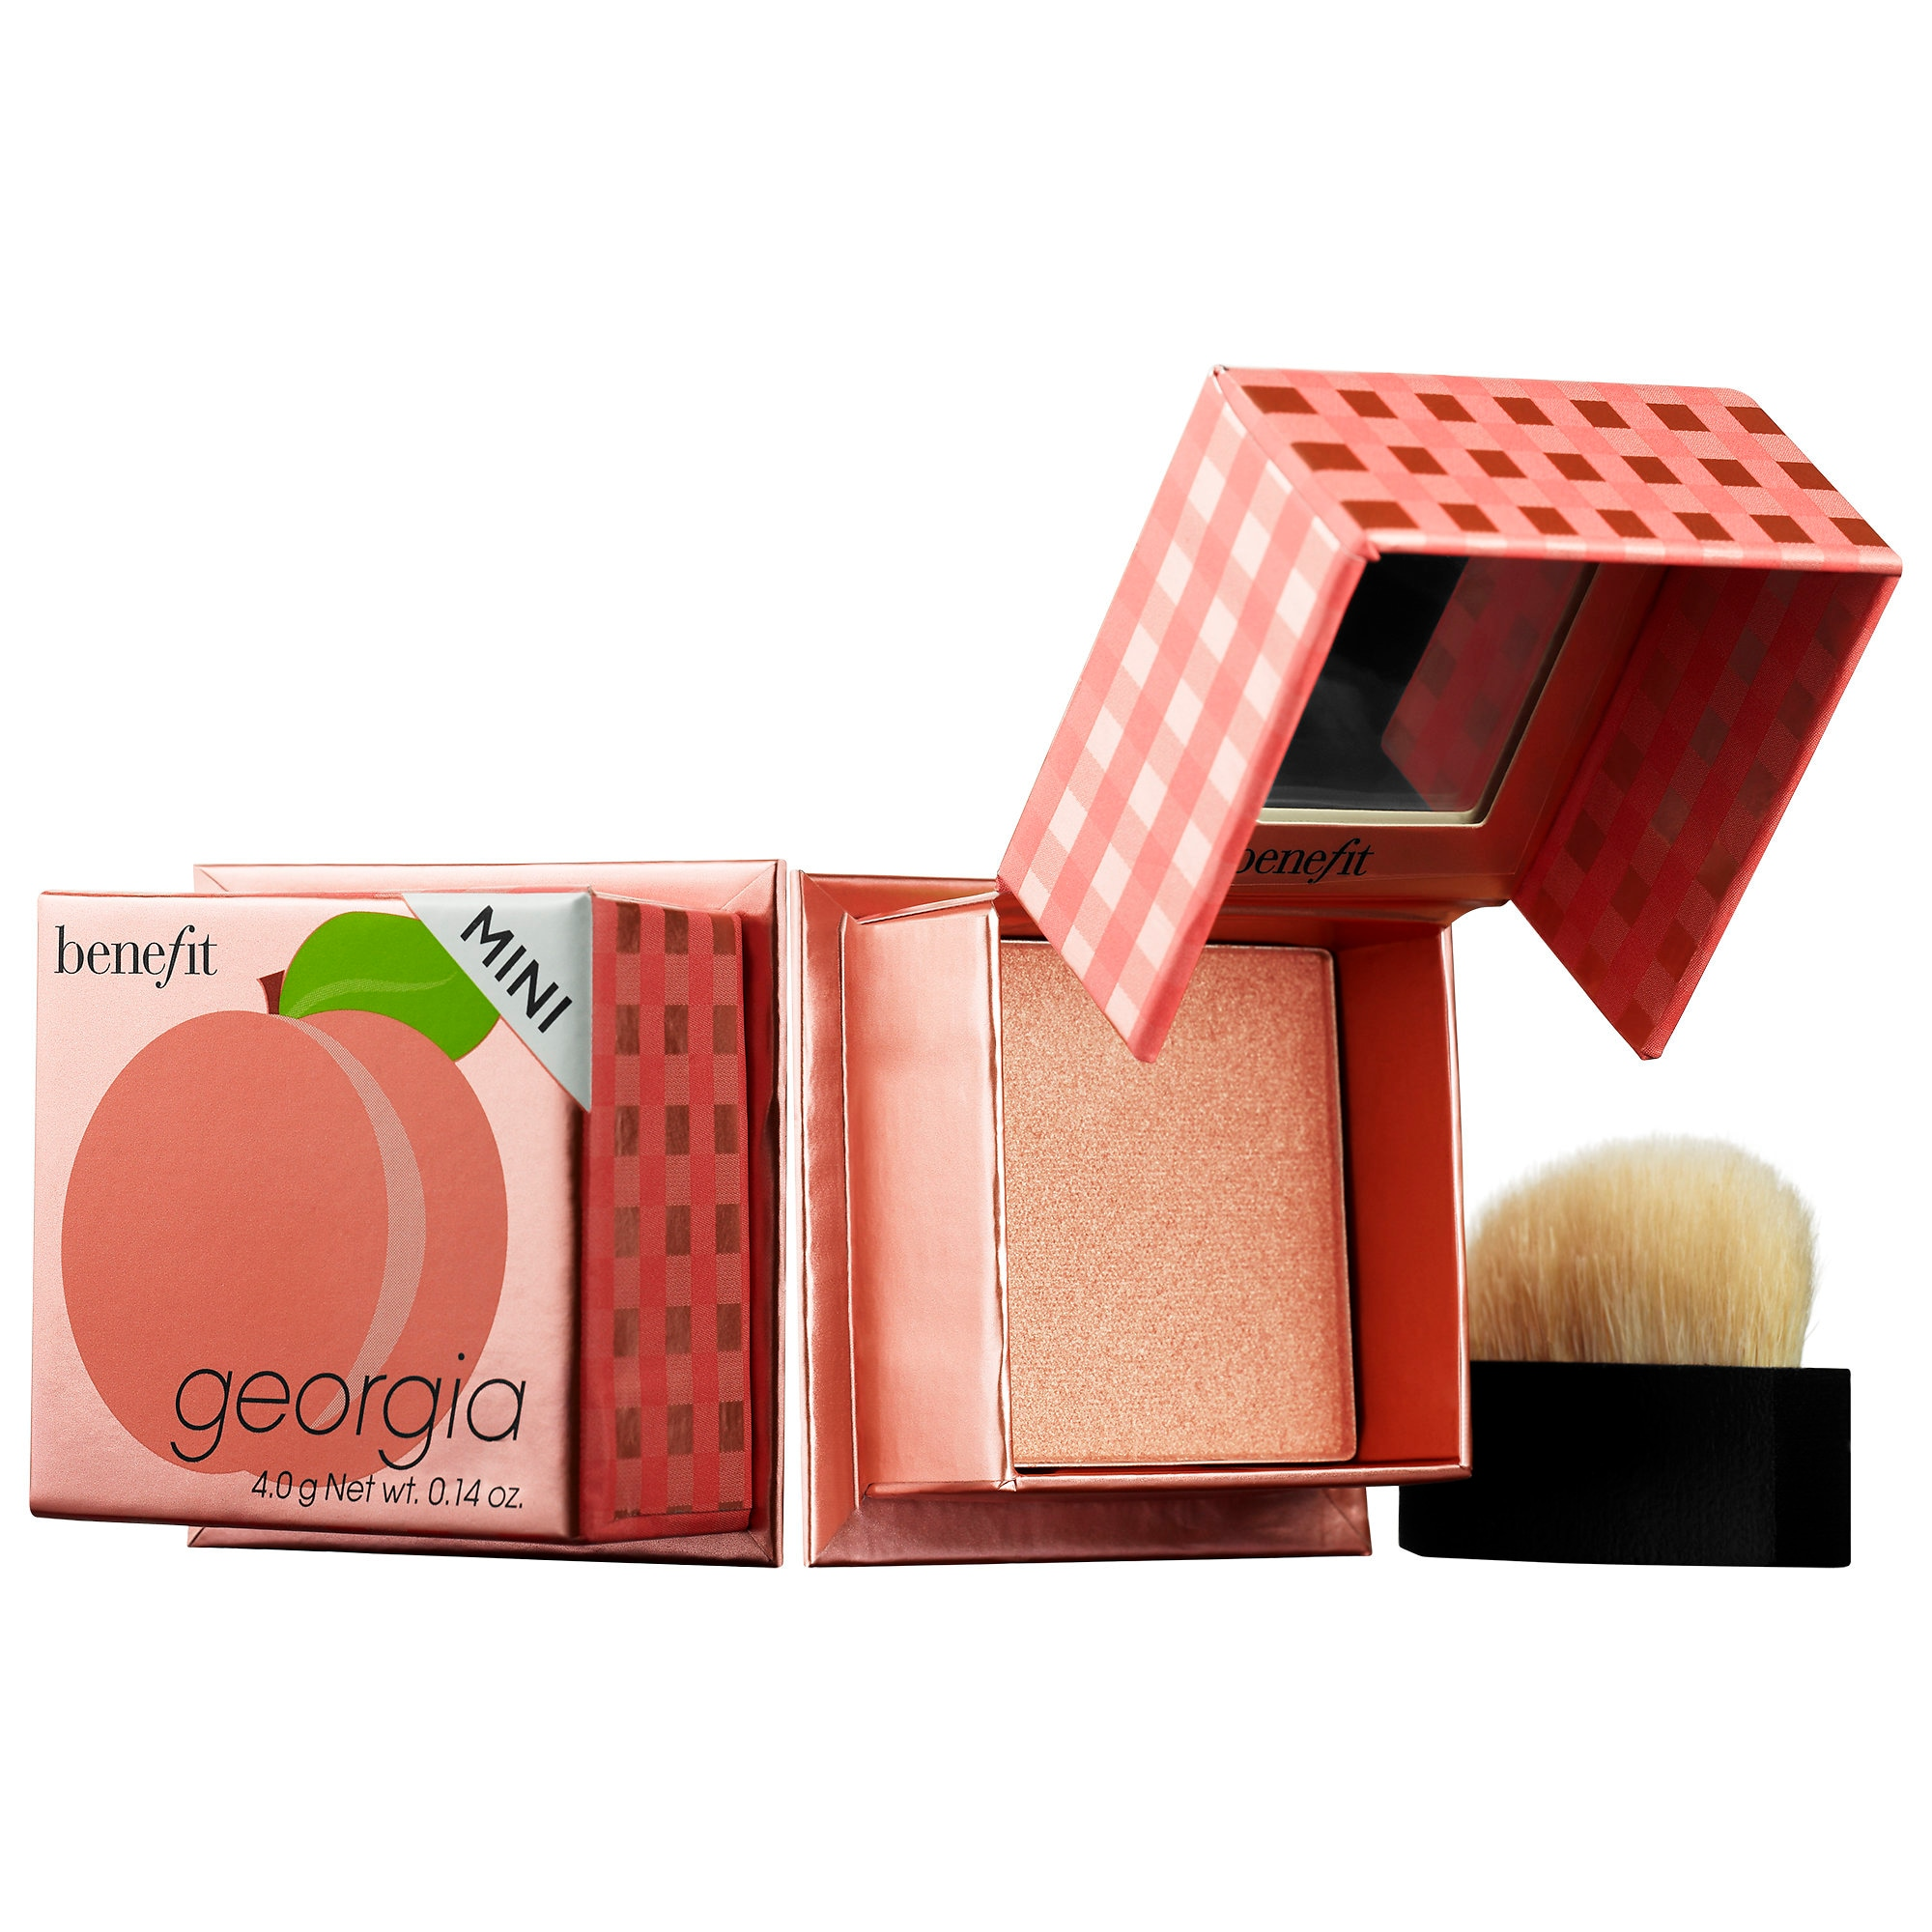 Benefit - Georgia Blush Mini